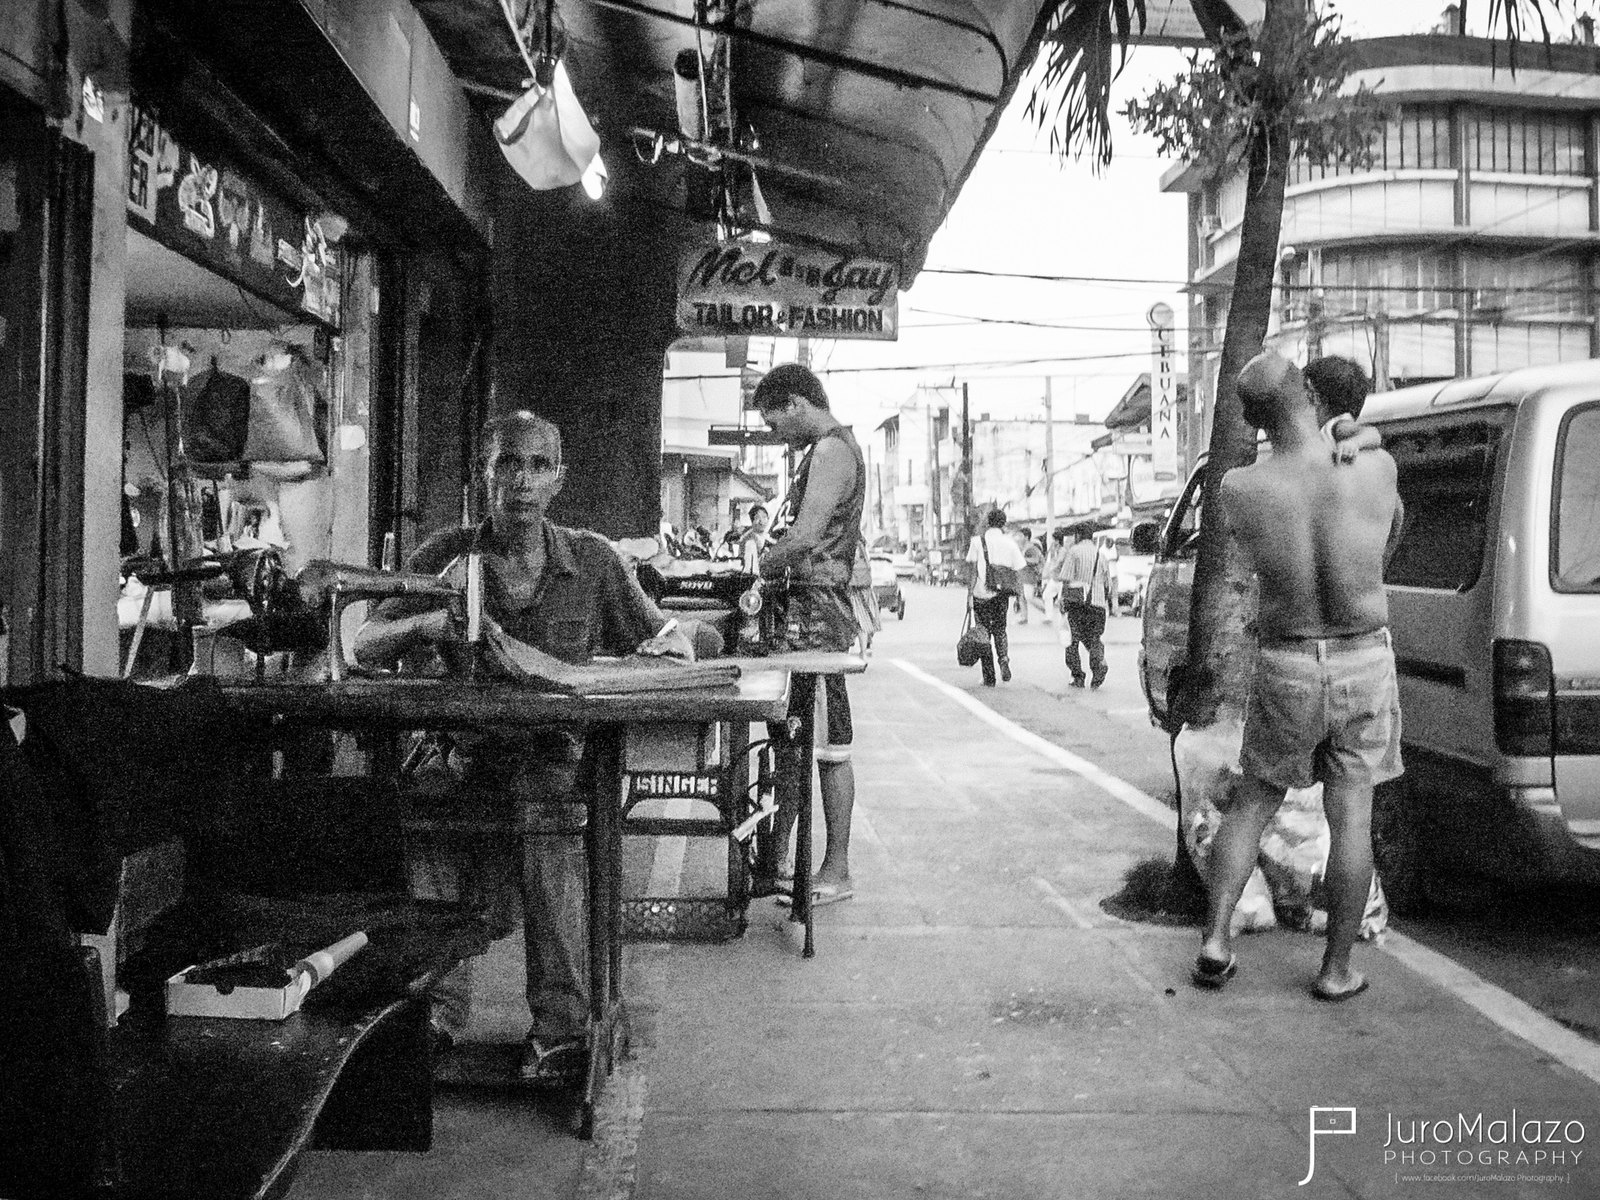 Tailor. (Out on the Streets: Street Photography by Juro Malazo)